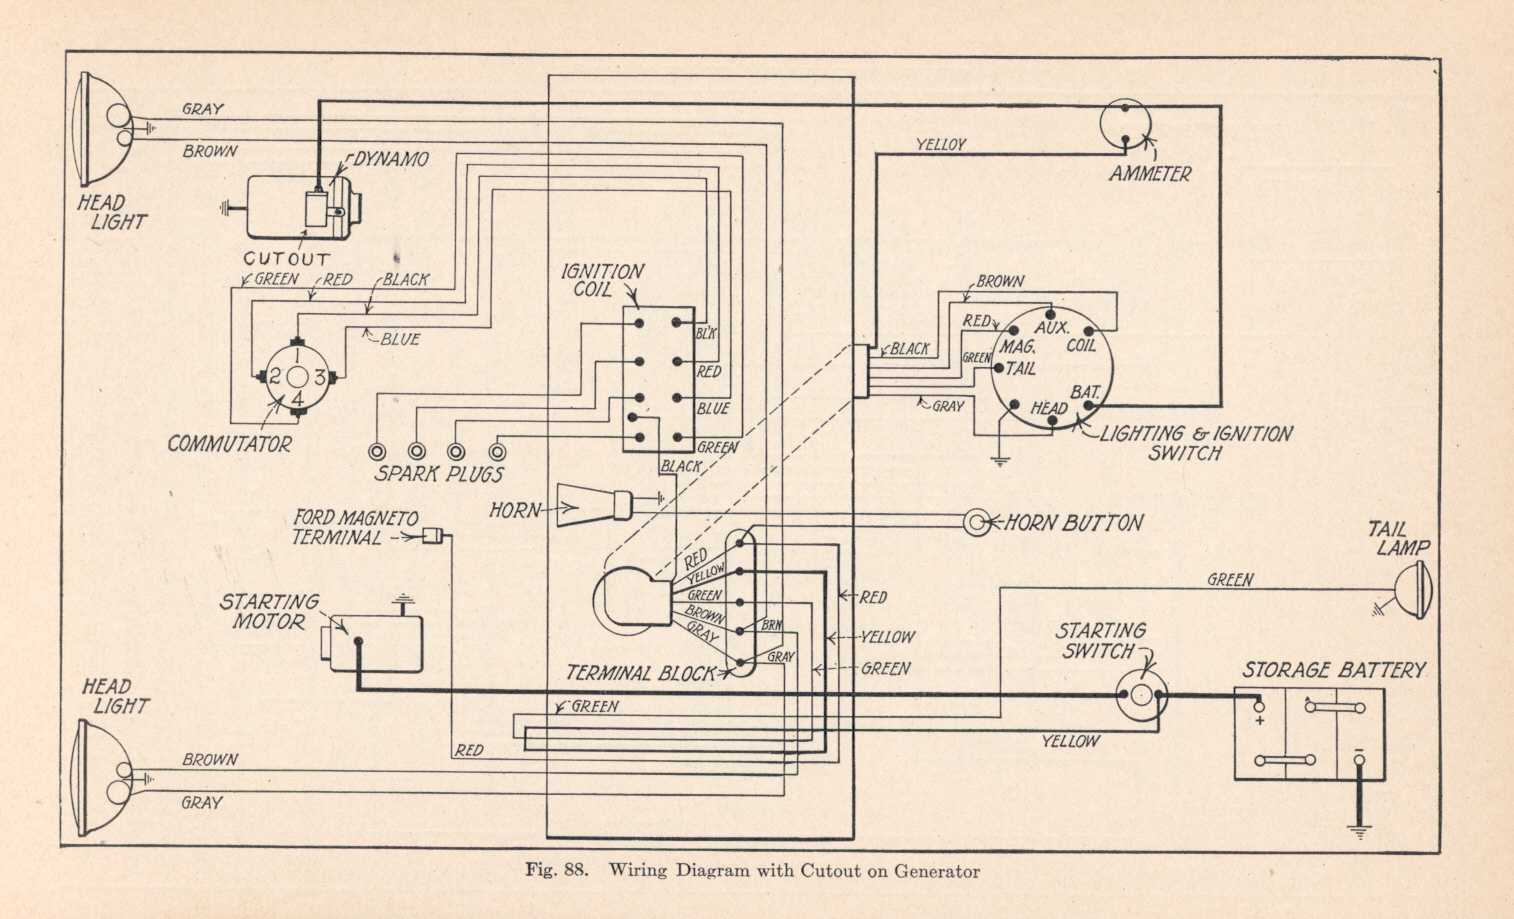 [SCHEMATICS_44OR]  Model T Ford Forum: Amp meter wiring help needed | Car Ammeter Wiring Diagram |  | Model T Ford Club of America